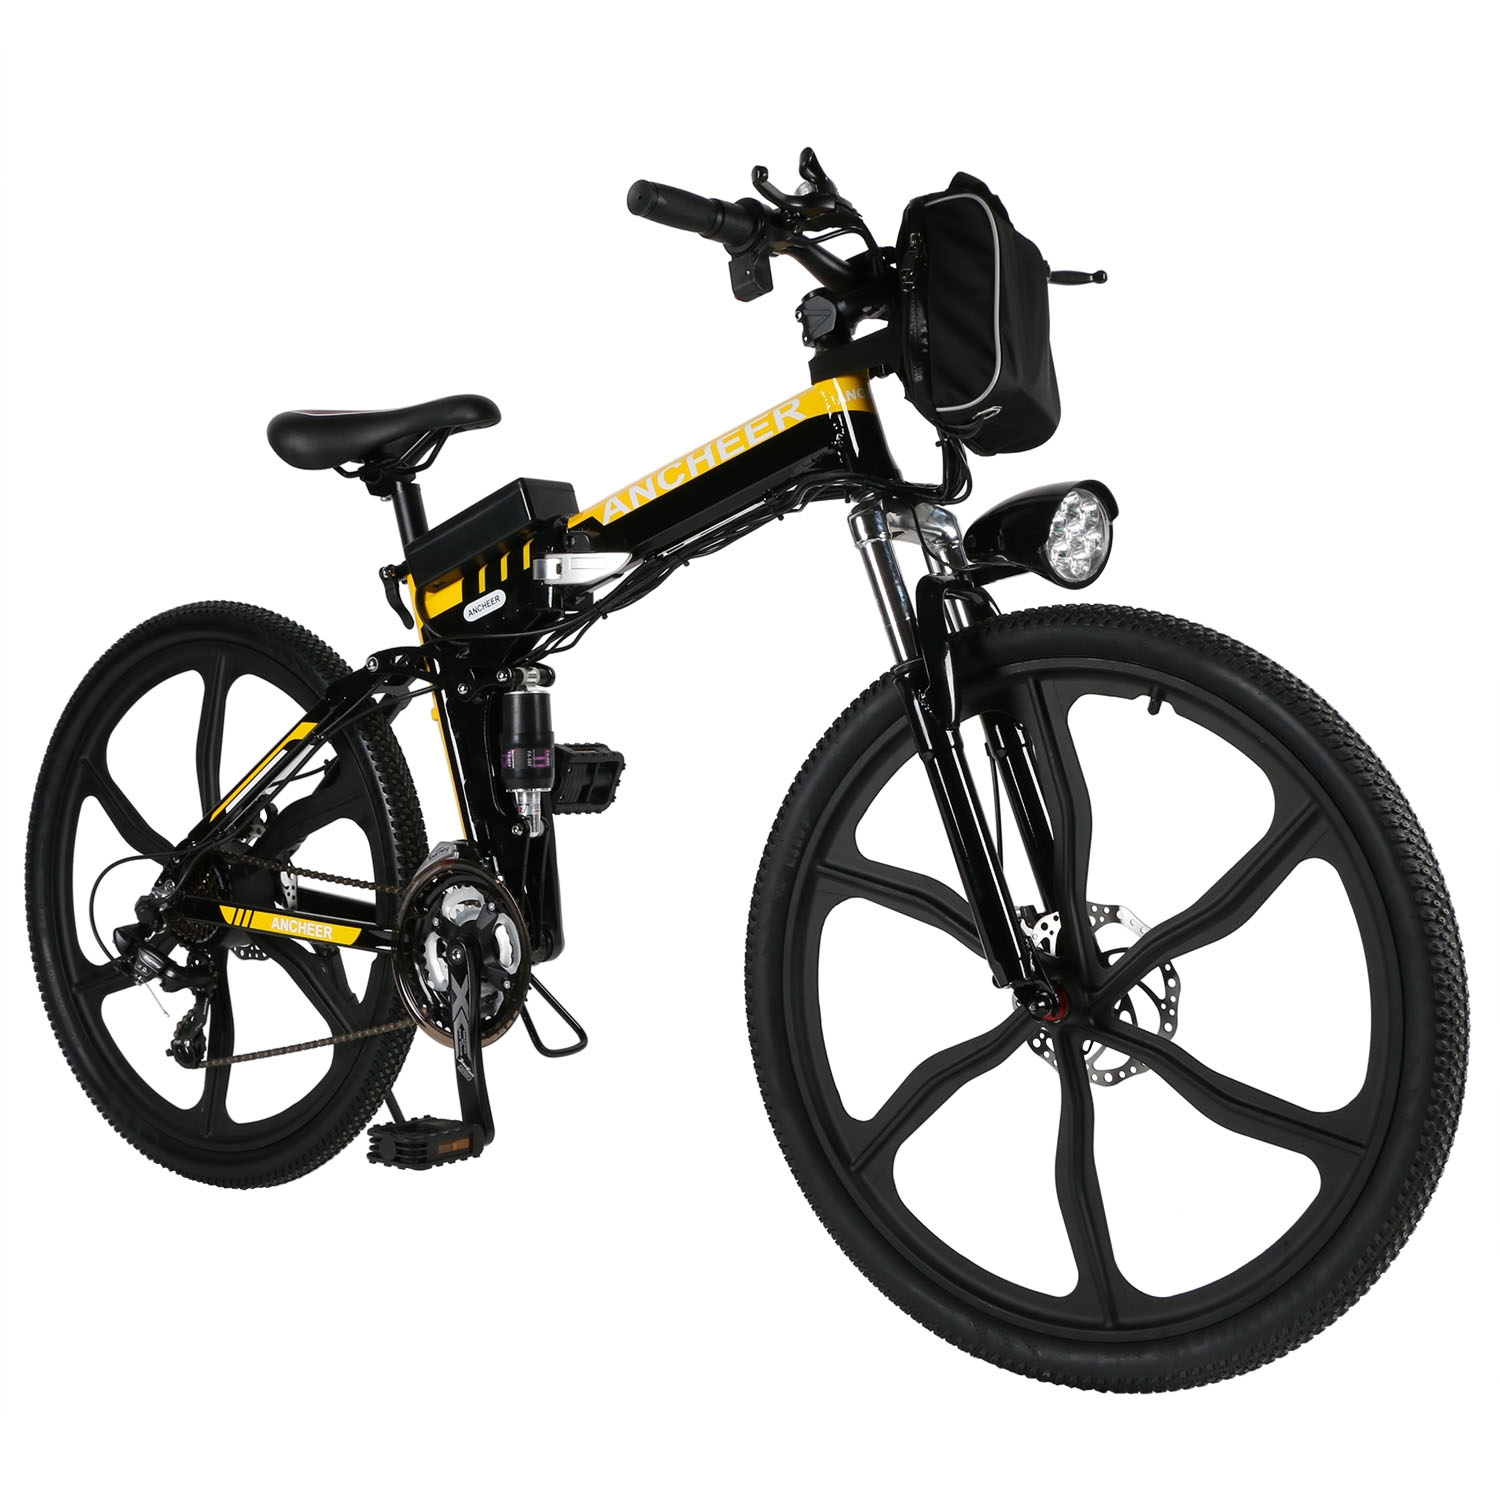 "26""Foldable Mountain Bike 27 Speed Folding Electric Power Bike Bicycle with Lithium-Ion Battery Smt by"